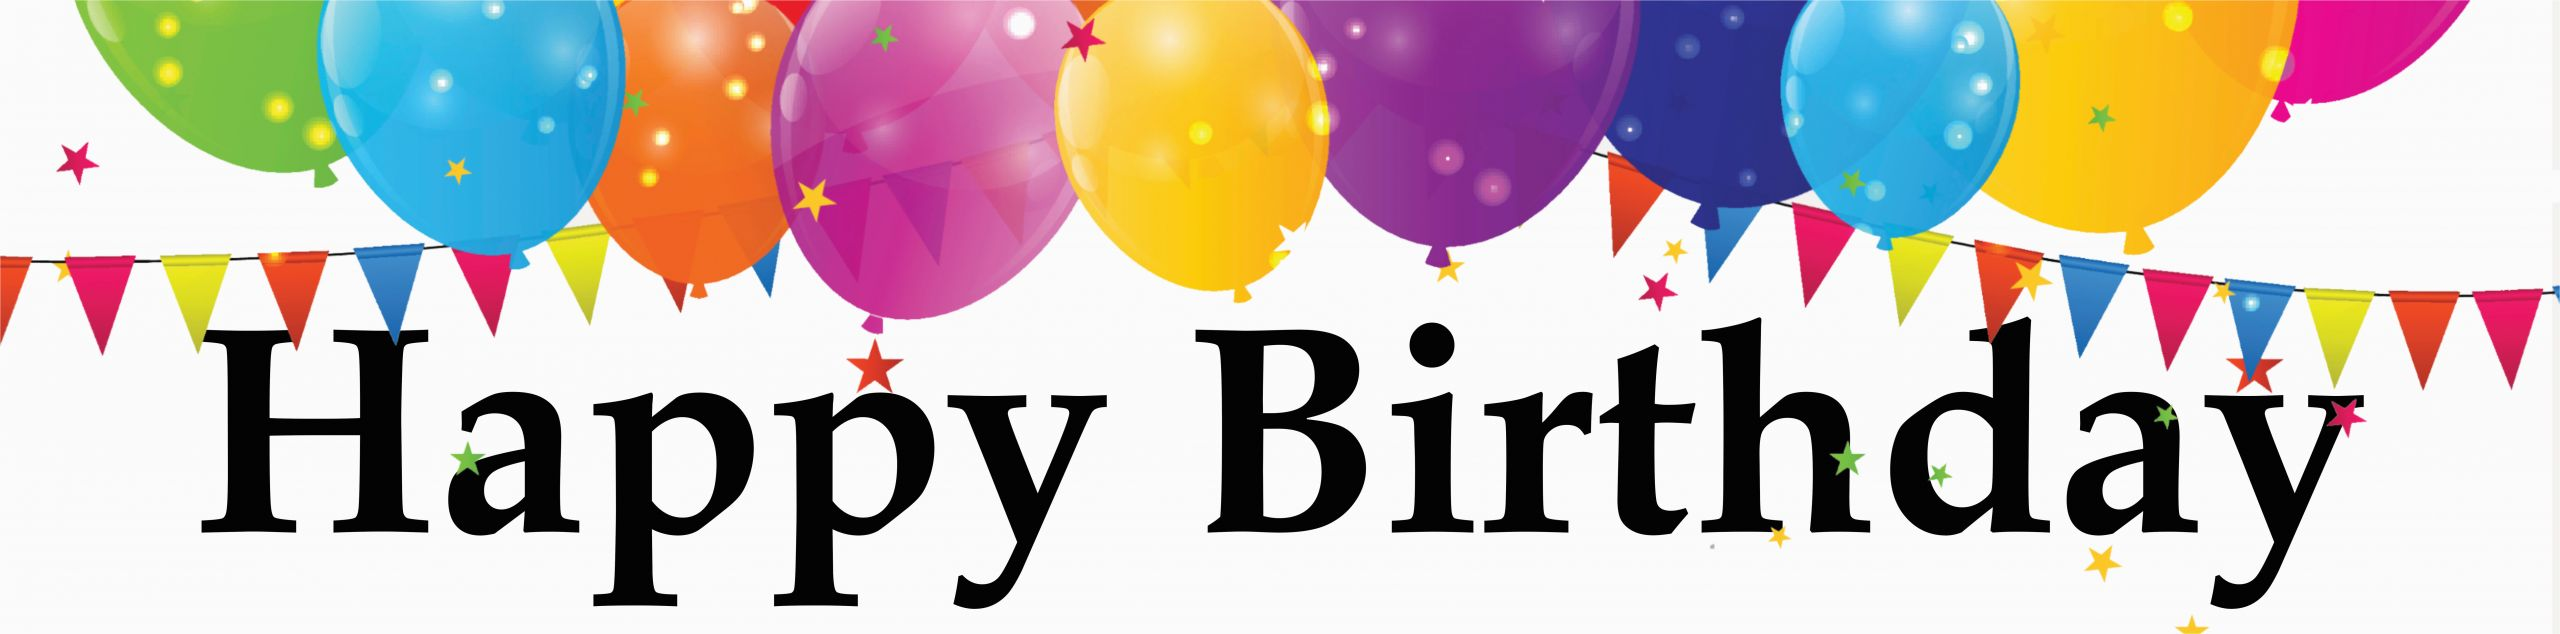 Download Happy Birthday Banner Image Happy Birthday Banner